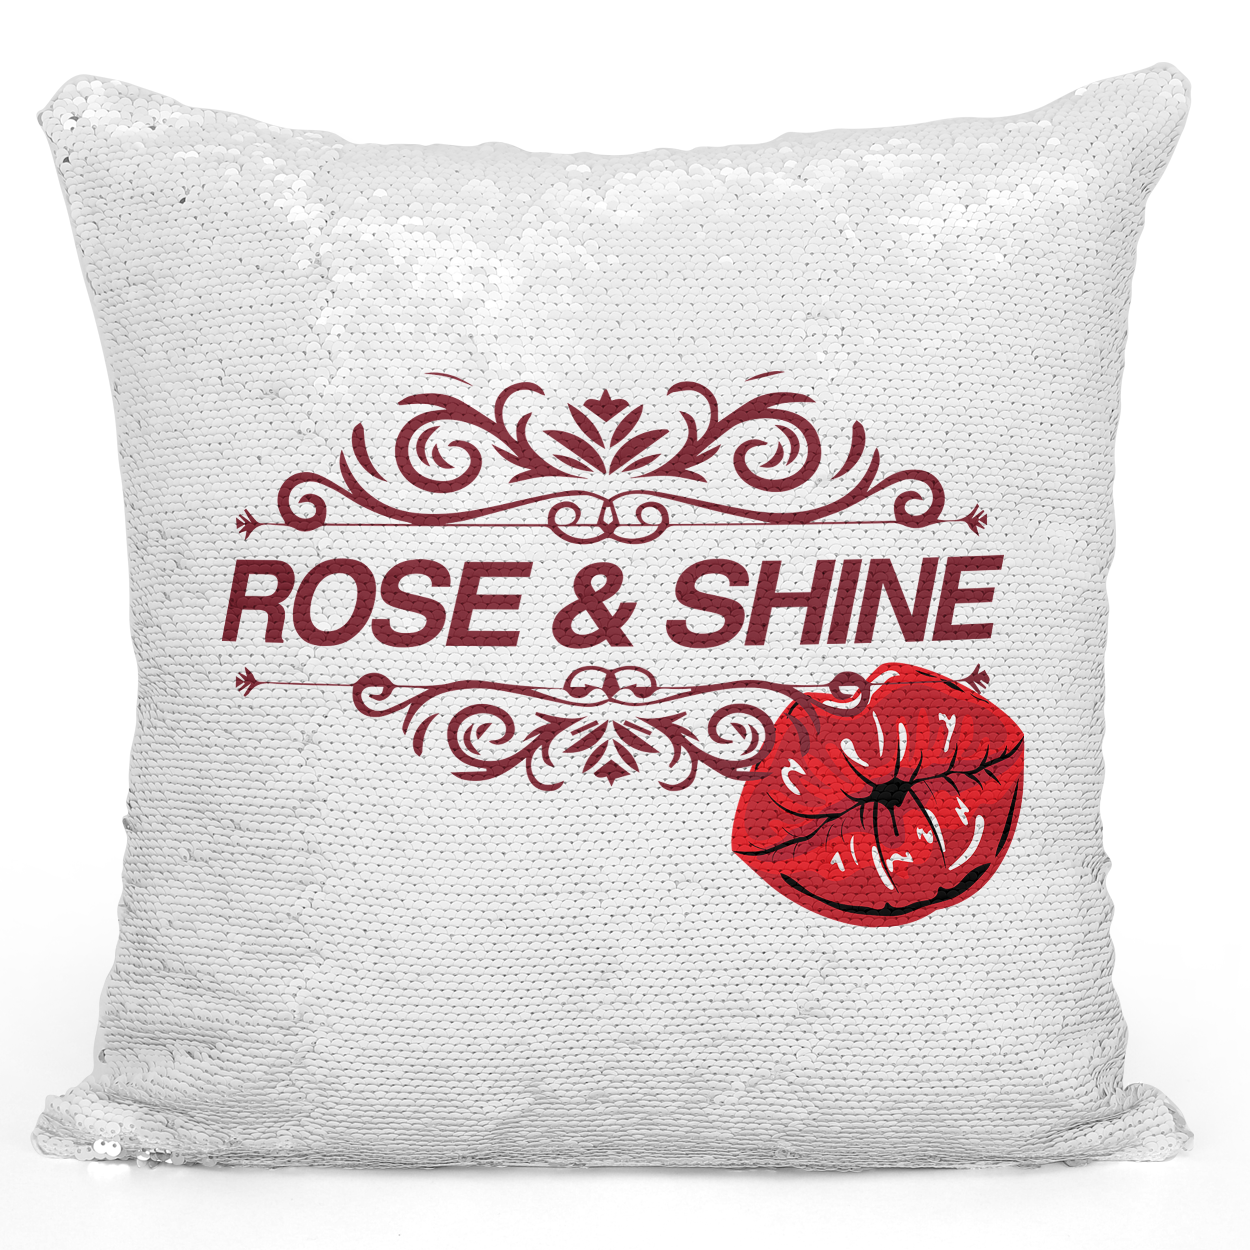 16x16 inch Sequin Throw Pillow Magic Flip Pillow Pretty Rose And Shine Kiss Red Lips Pillow Loud Universe